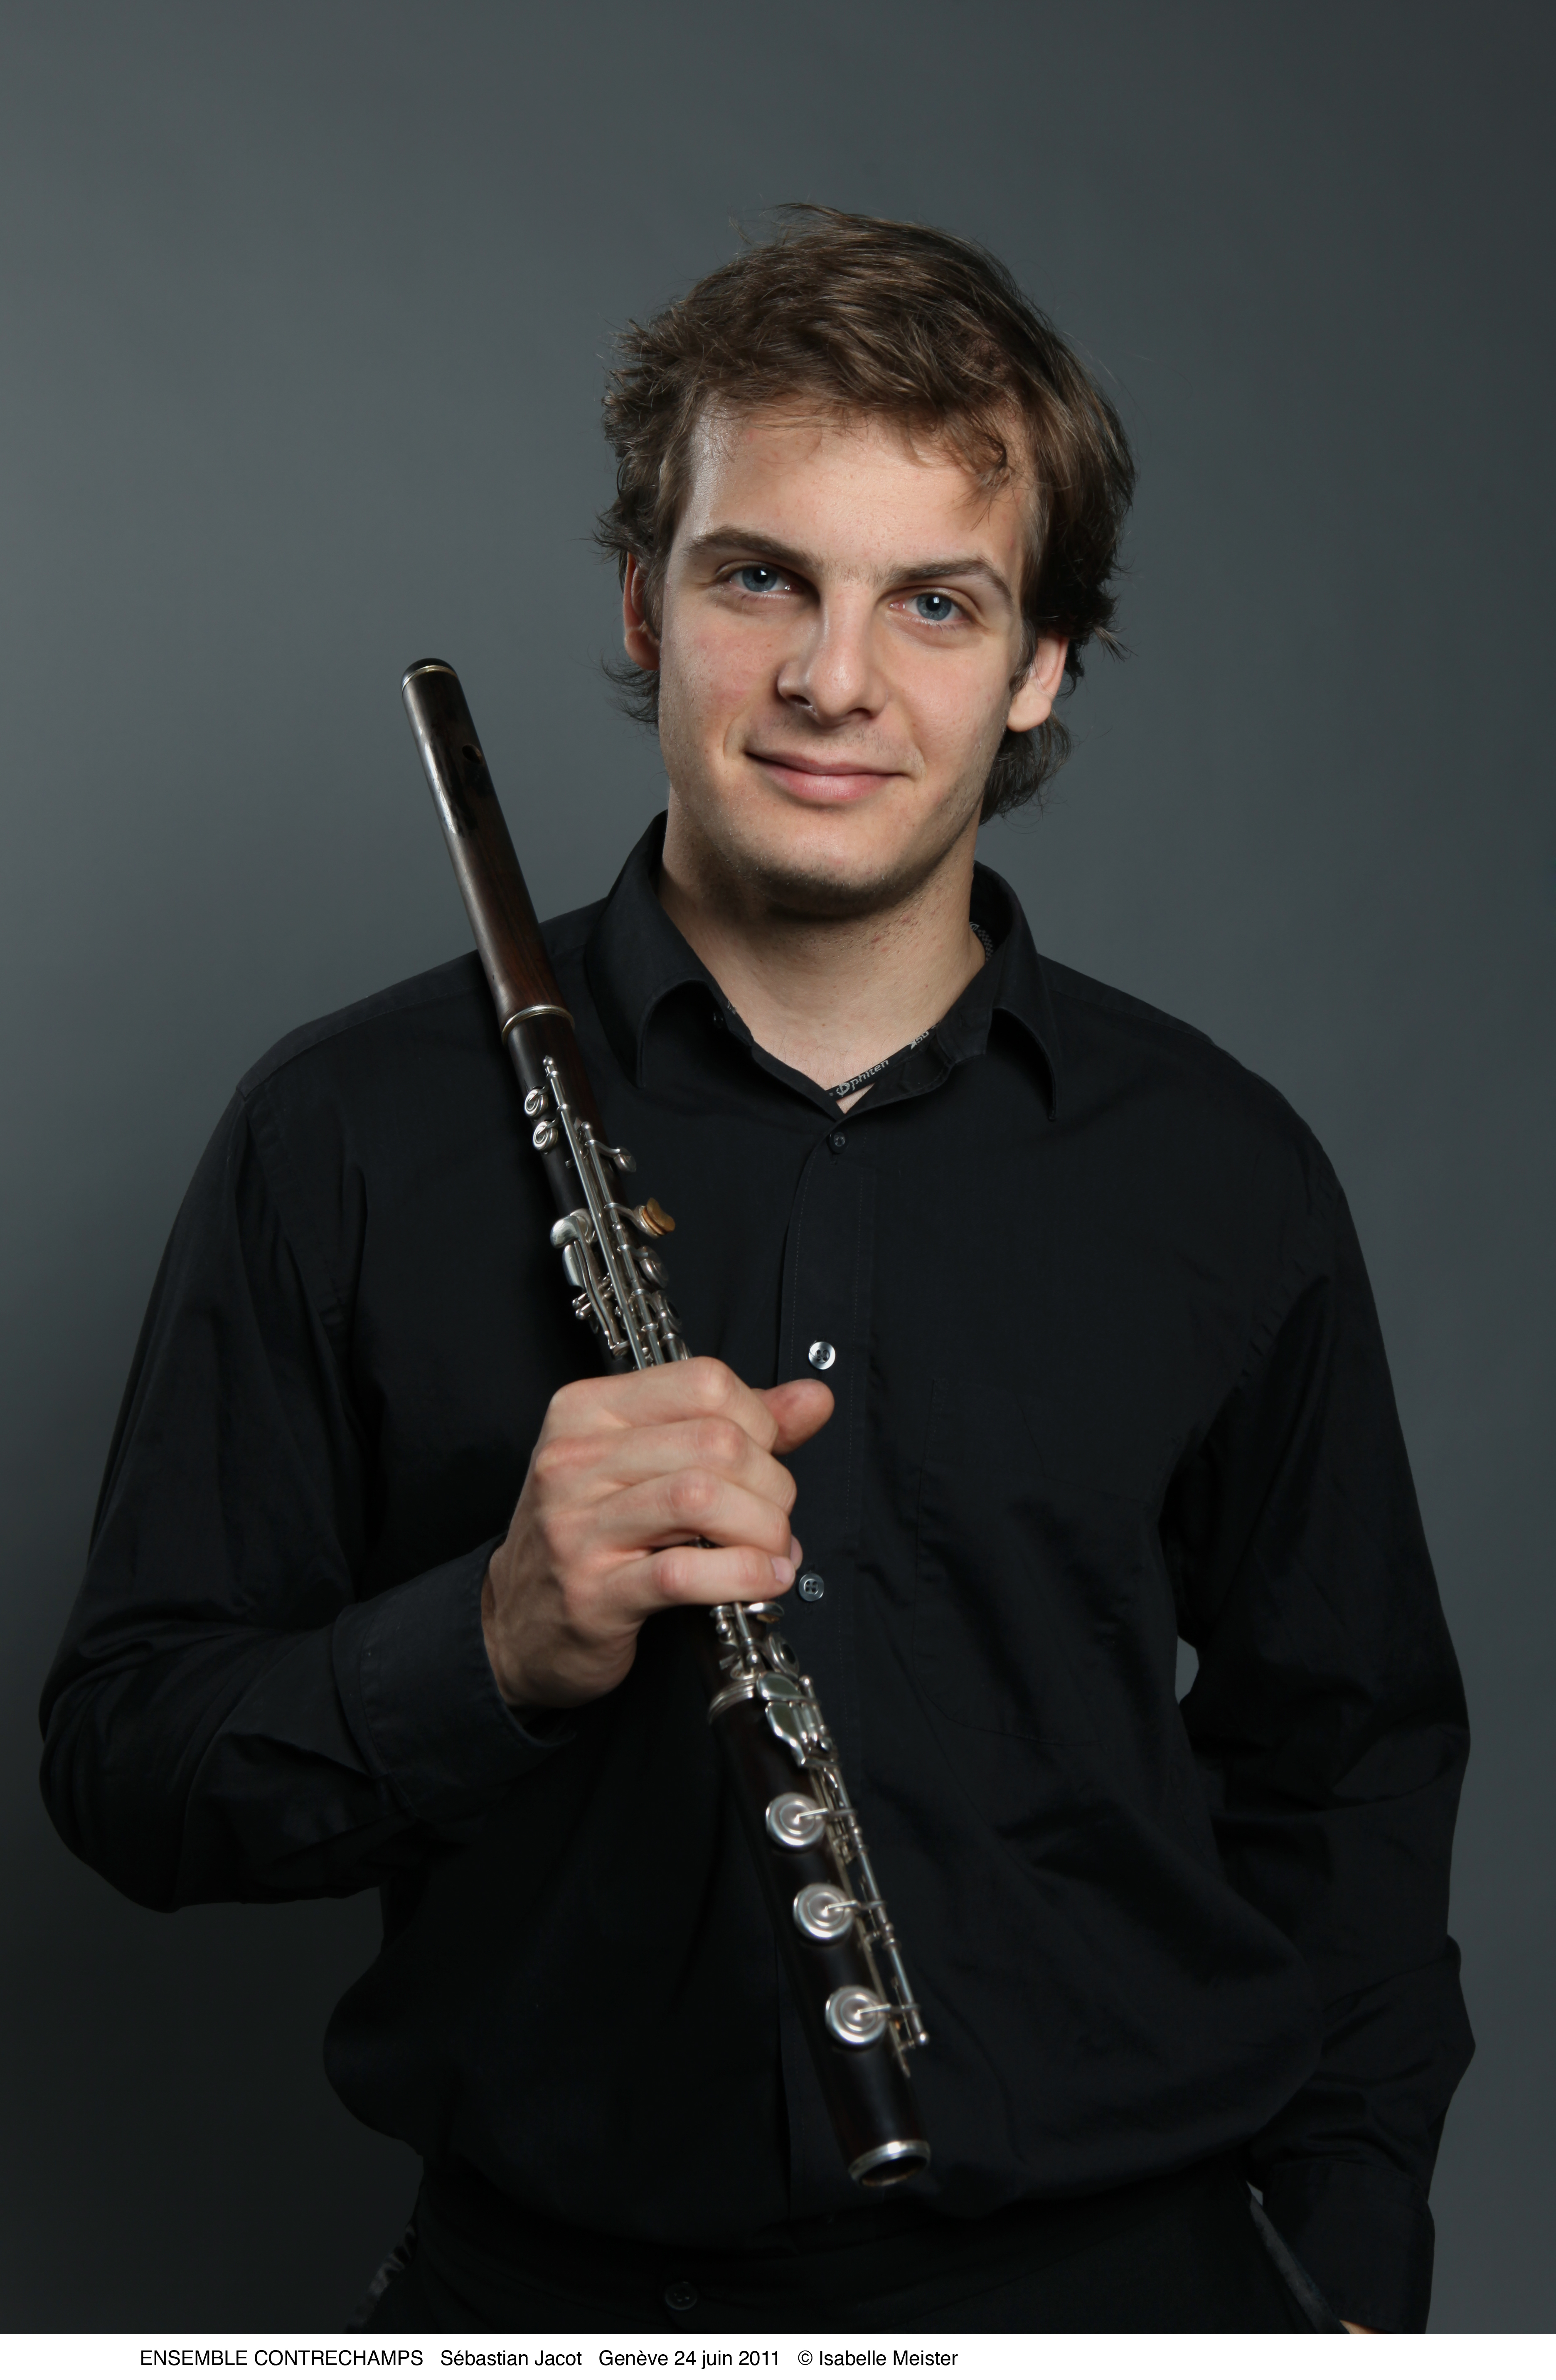 Munich Symphony Orchestra, The Conducted By Robert Sharples - Sea